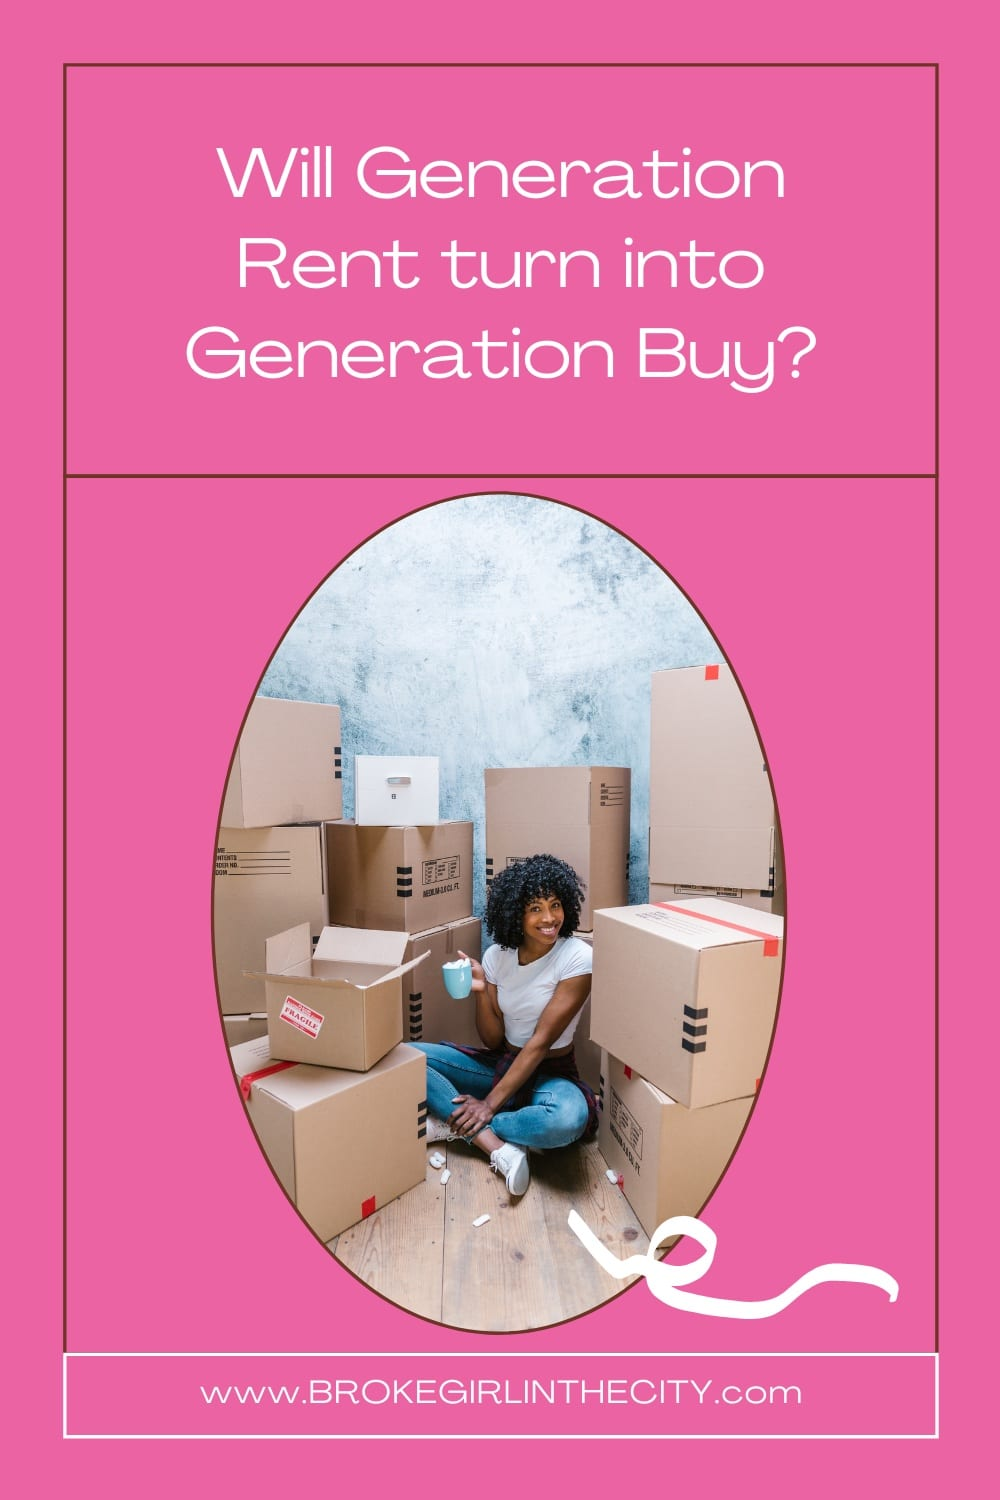 WILL THE GOVERNMENT BE ABLE TO TURN GENERATION RENT INTO GENERATION BUY?